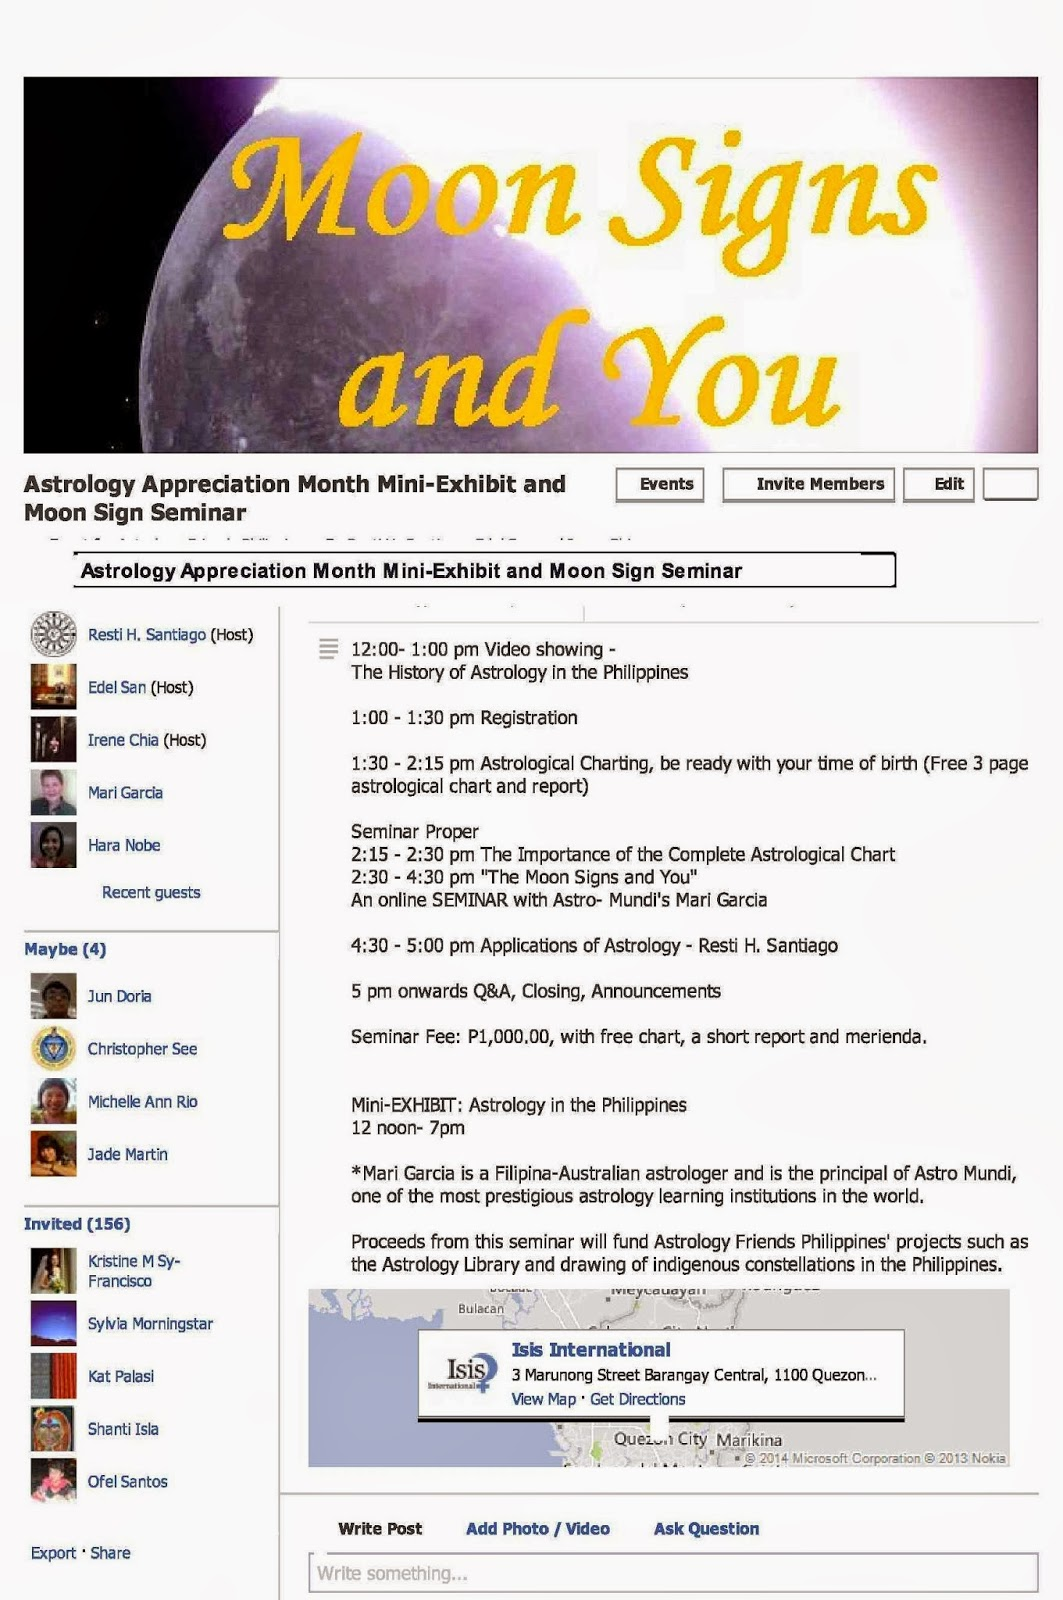 Astrology friends philippines march 2014 astrology appreciation month mini exhibit and moon sign seminar on march 15 2014 geenschuldenfo Image collections